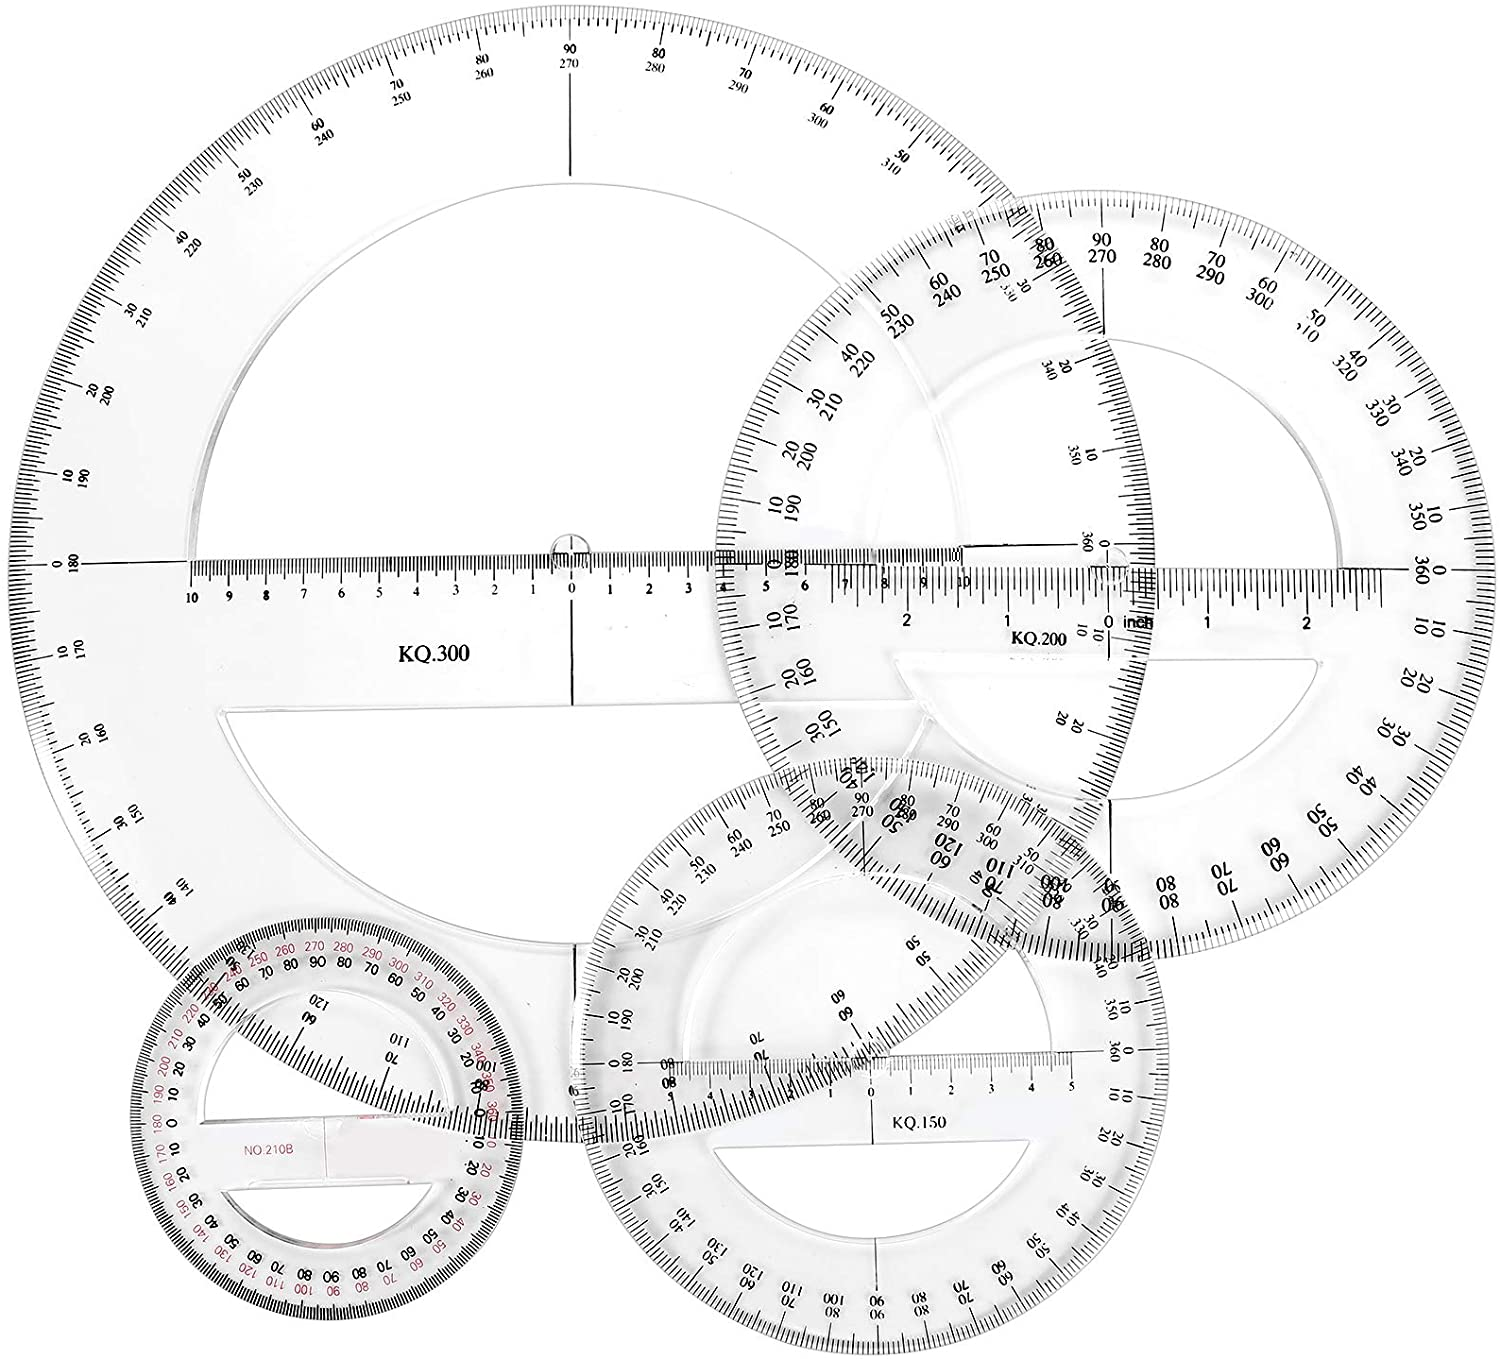 Multi-size Plastic Protractor 360 Degrees Math Protractors Clear Circular Protractors Mathematical Tool for Angle Measurement, Student School Office Supplies (4 Inch, 6 Inch, 8 Inch, 12 Inch): Home Improvement